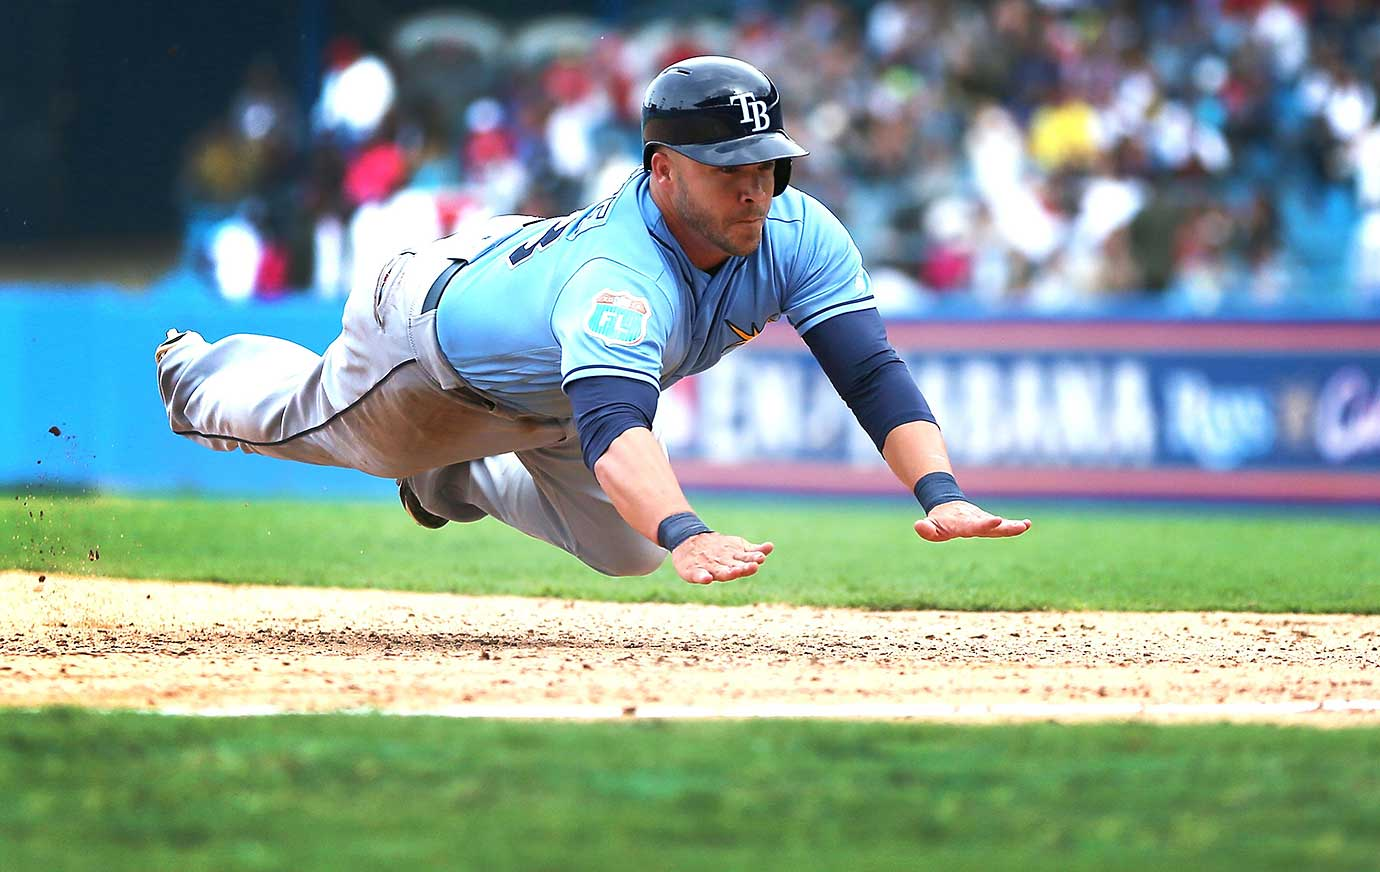 Steve Pearce of the Tampa Bay Rays dives safely into third base during the exhibition game in Cuba.